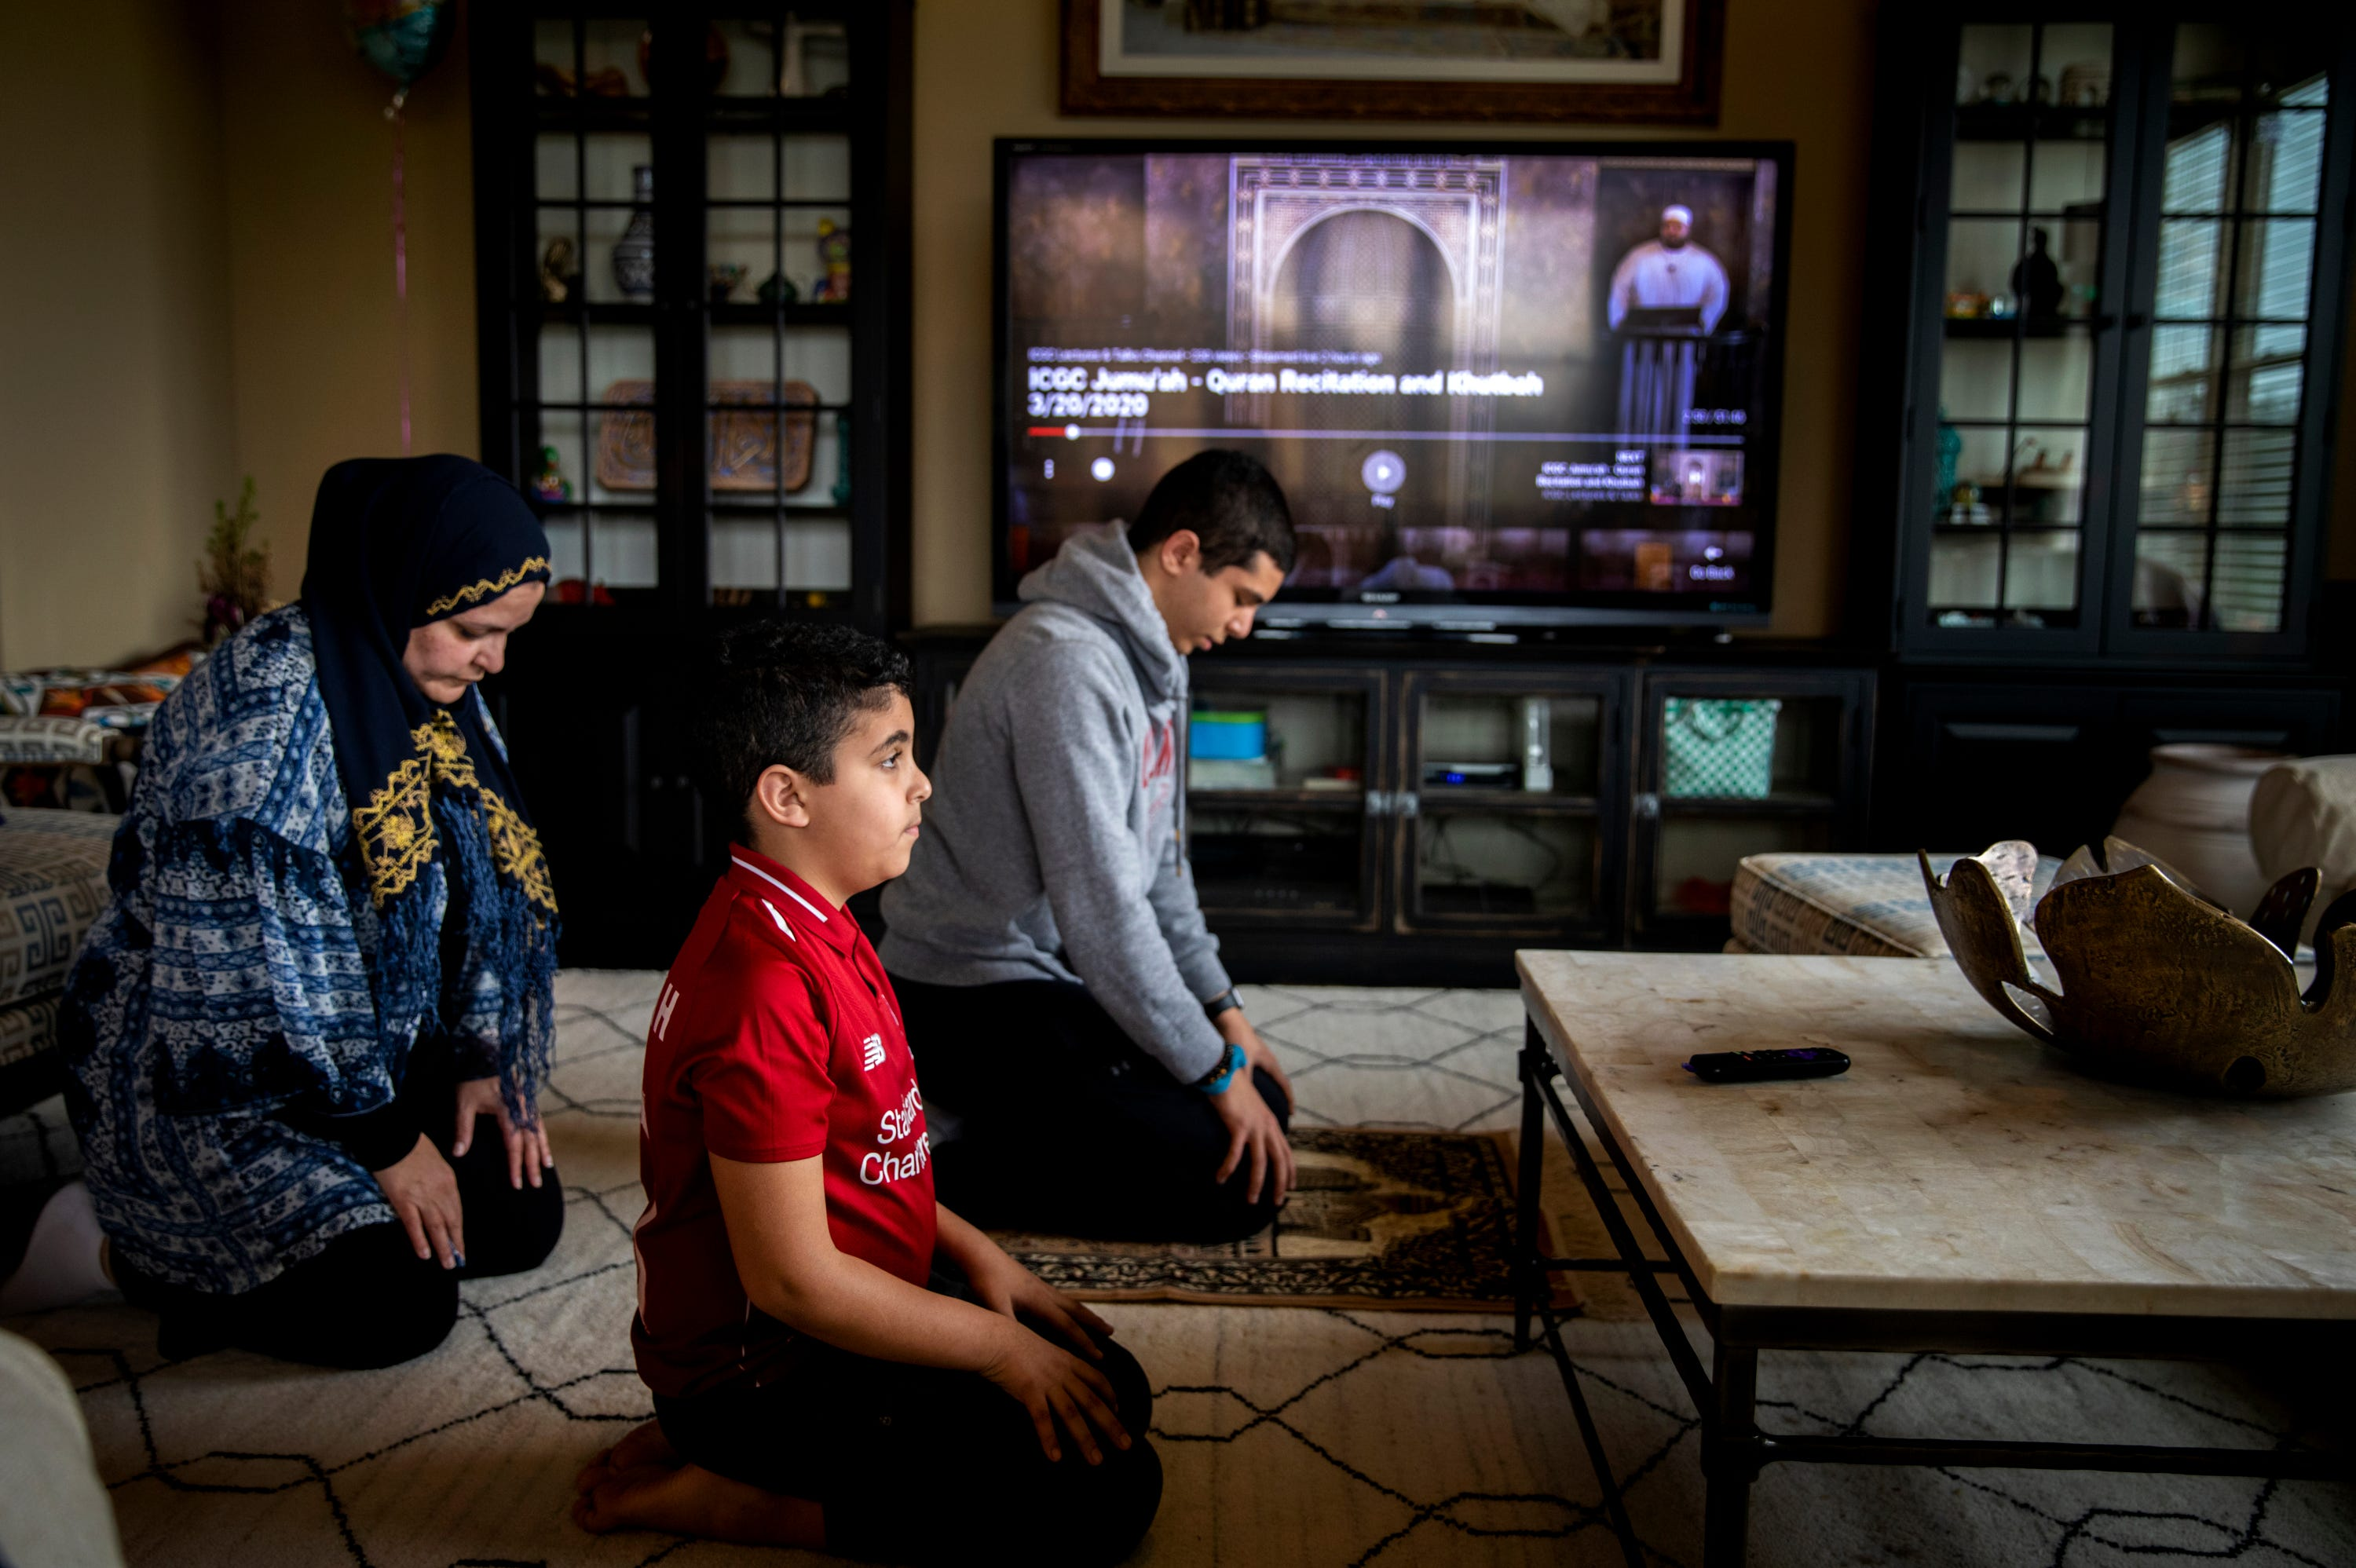 The faithful usually gather to worship, but faith starts at home, too. Noha Eyada and her children, Yahia, 19, and Yusuf, 8, observe the call to prayer from the Islamic Center of Greater Cincinnati in West Chester, Ohio, on March 20.